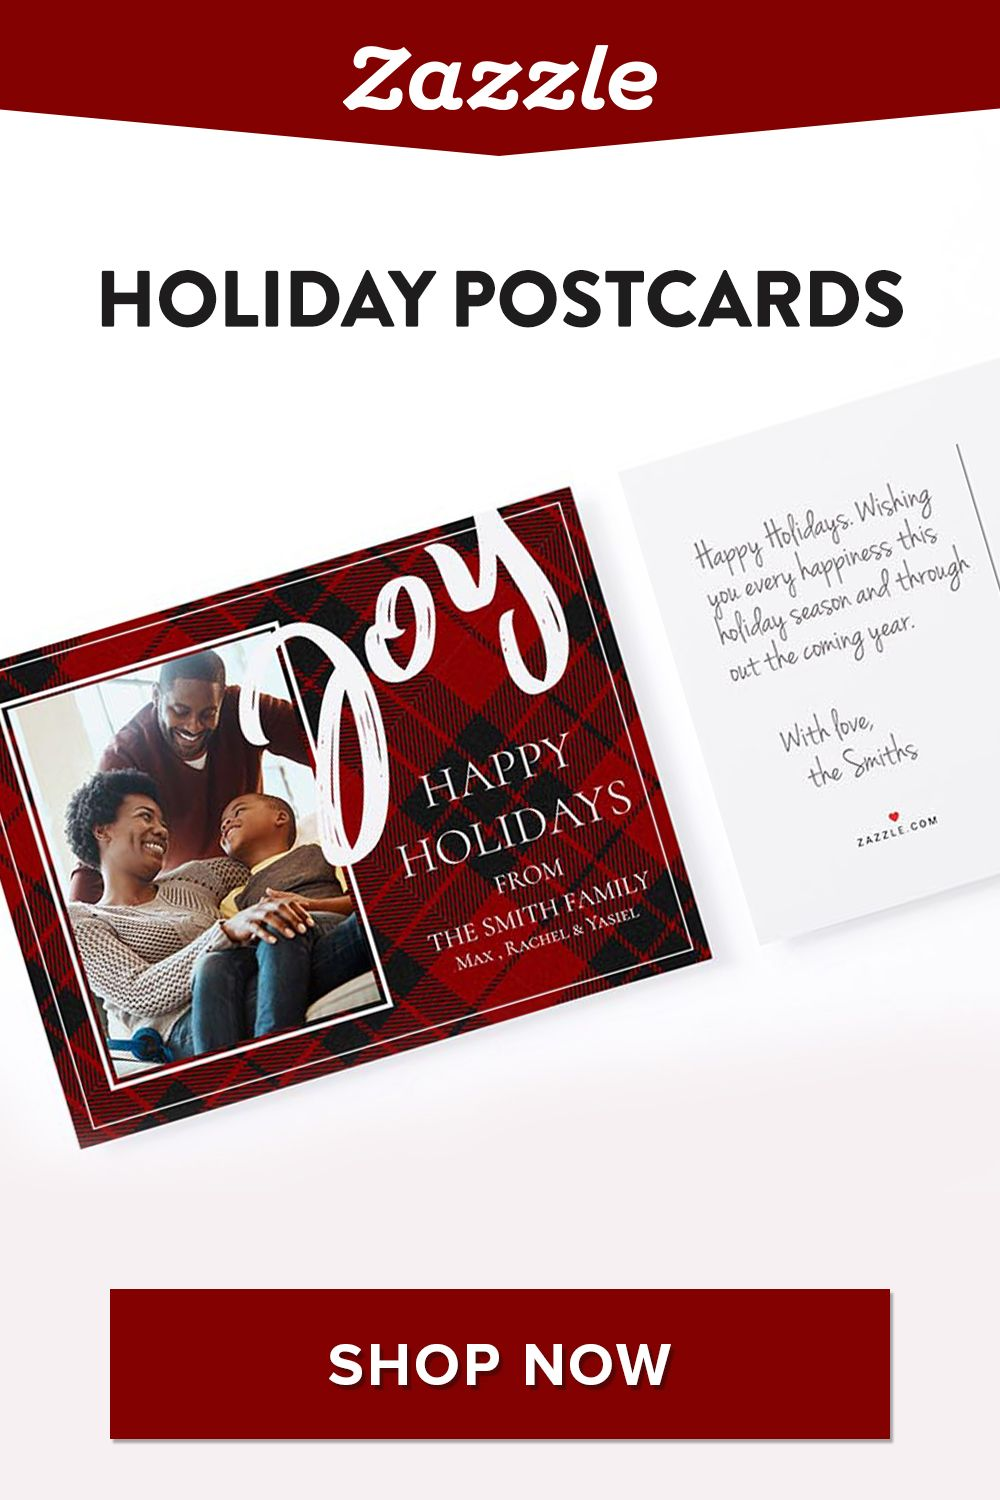 This year, support independent designers and find your perfect holiday card on Zazzle. We've got thousands of designs to choose from, including themes for newlyweds, a new baby, funny, pets, Disney and more. Browse by style, theme, or number of photos.